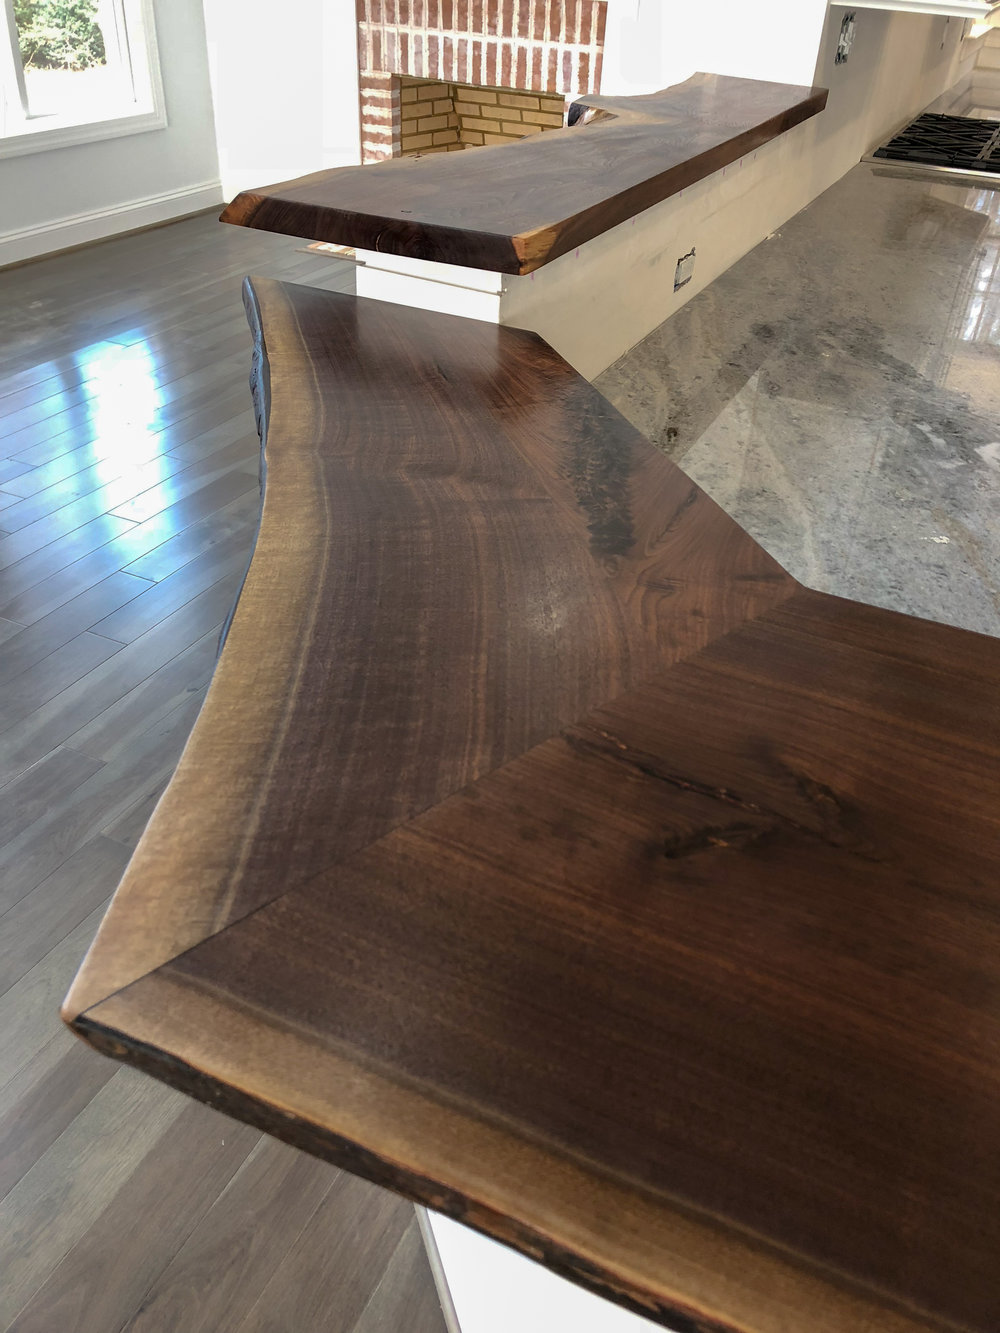 Live Edge Walnut Bar Top Hardwood Kitchen Island Live Edge Mantle Crab Point Sallie Plumley Studio Richmond Virginia Sally Plumley